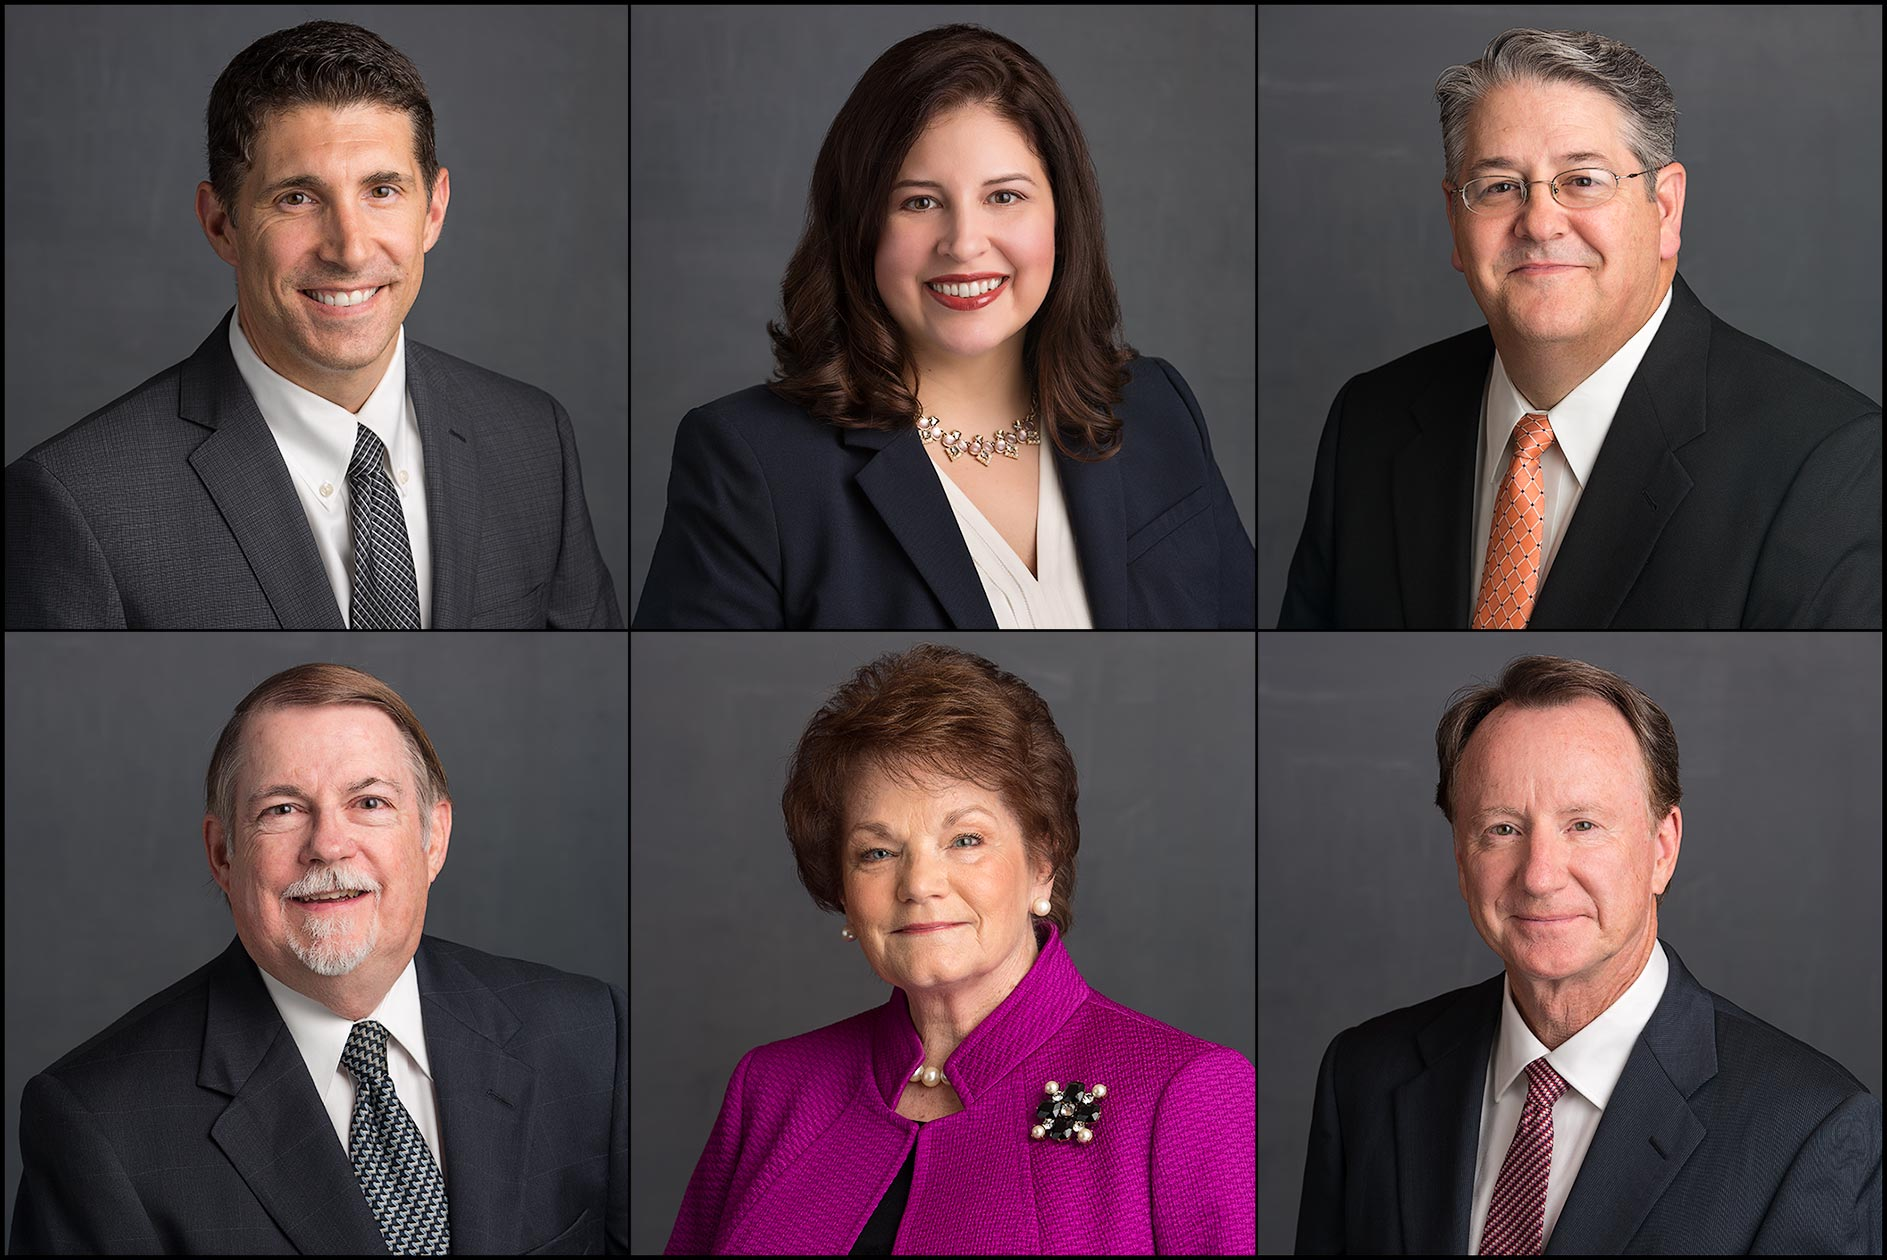 Business Headshots / Bio Portraits – Investment firm executives in grid of six portraits.